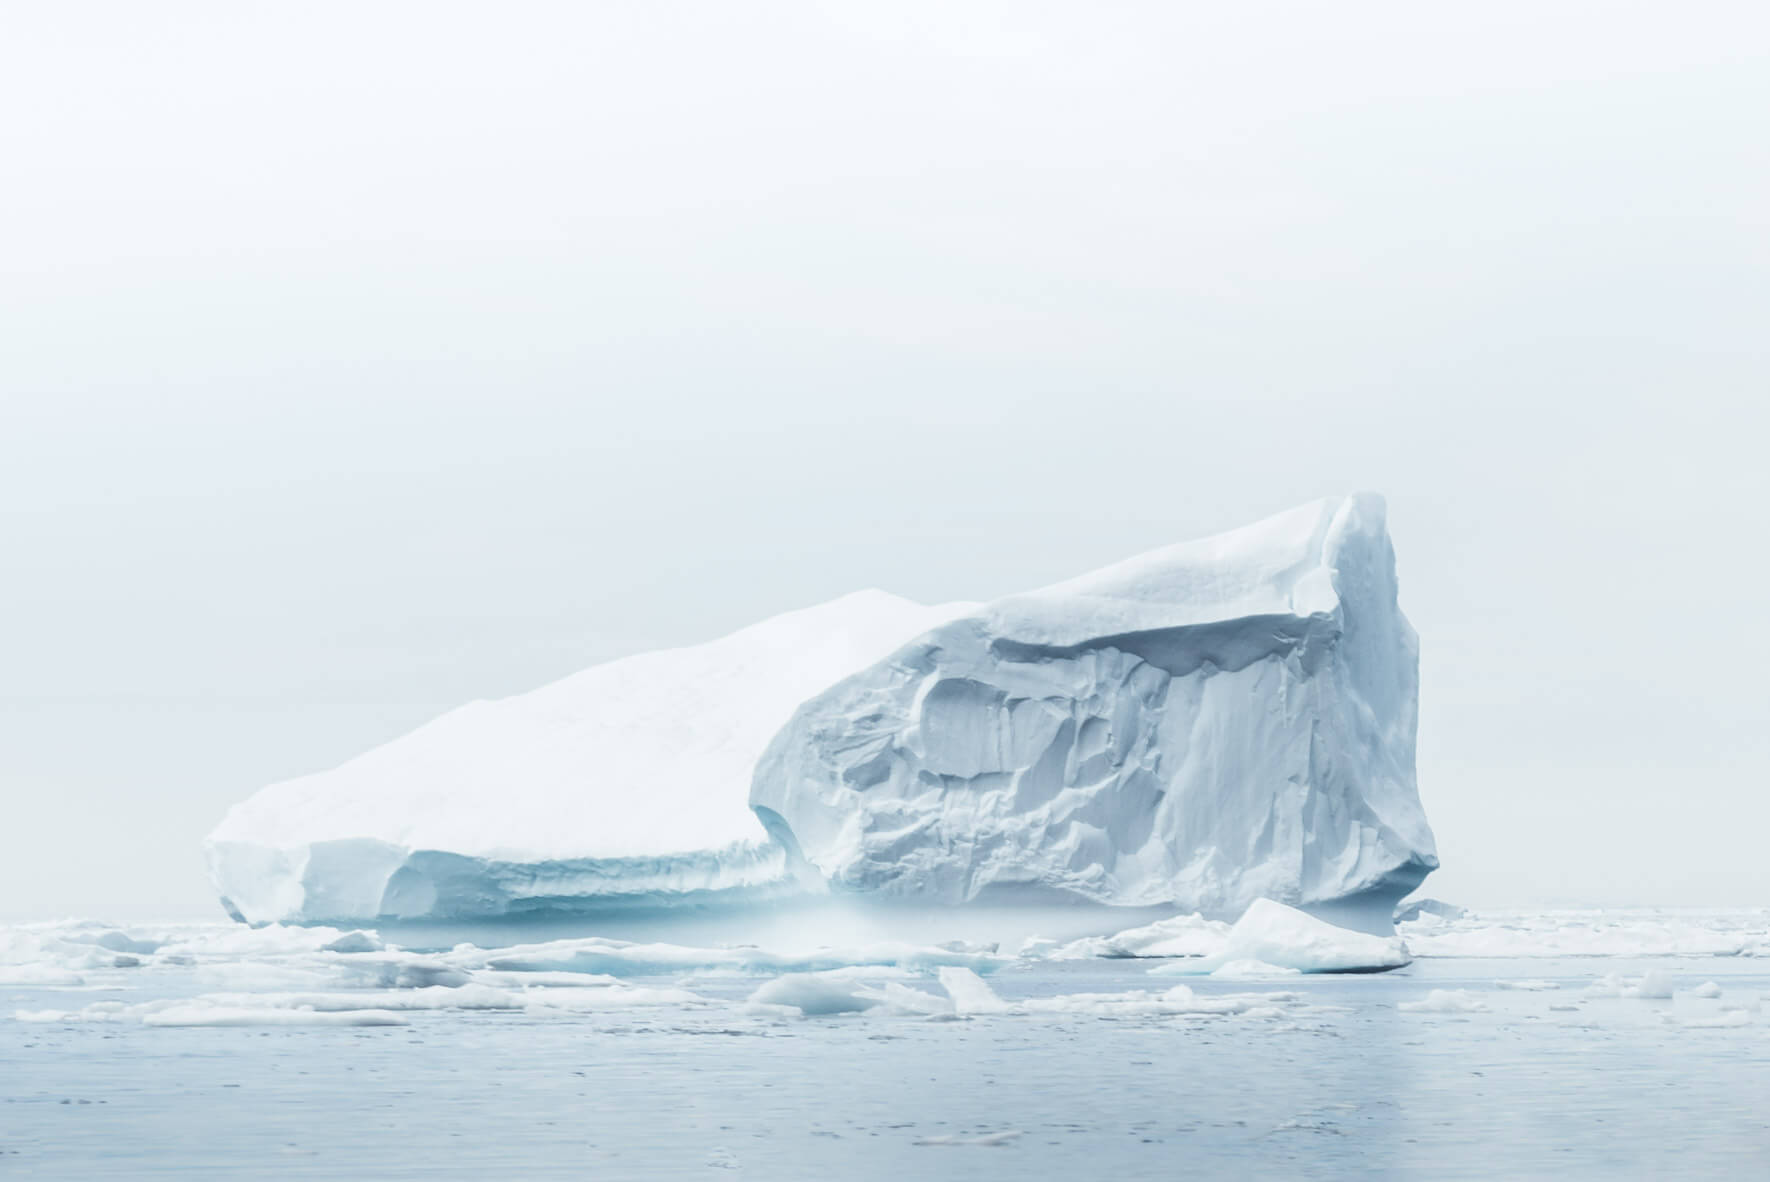 Iceberg in the Arctic waters of Greenland